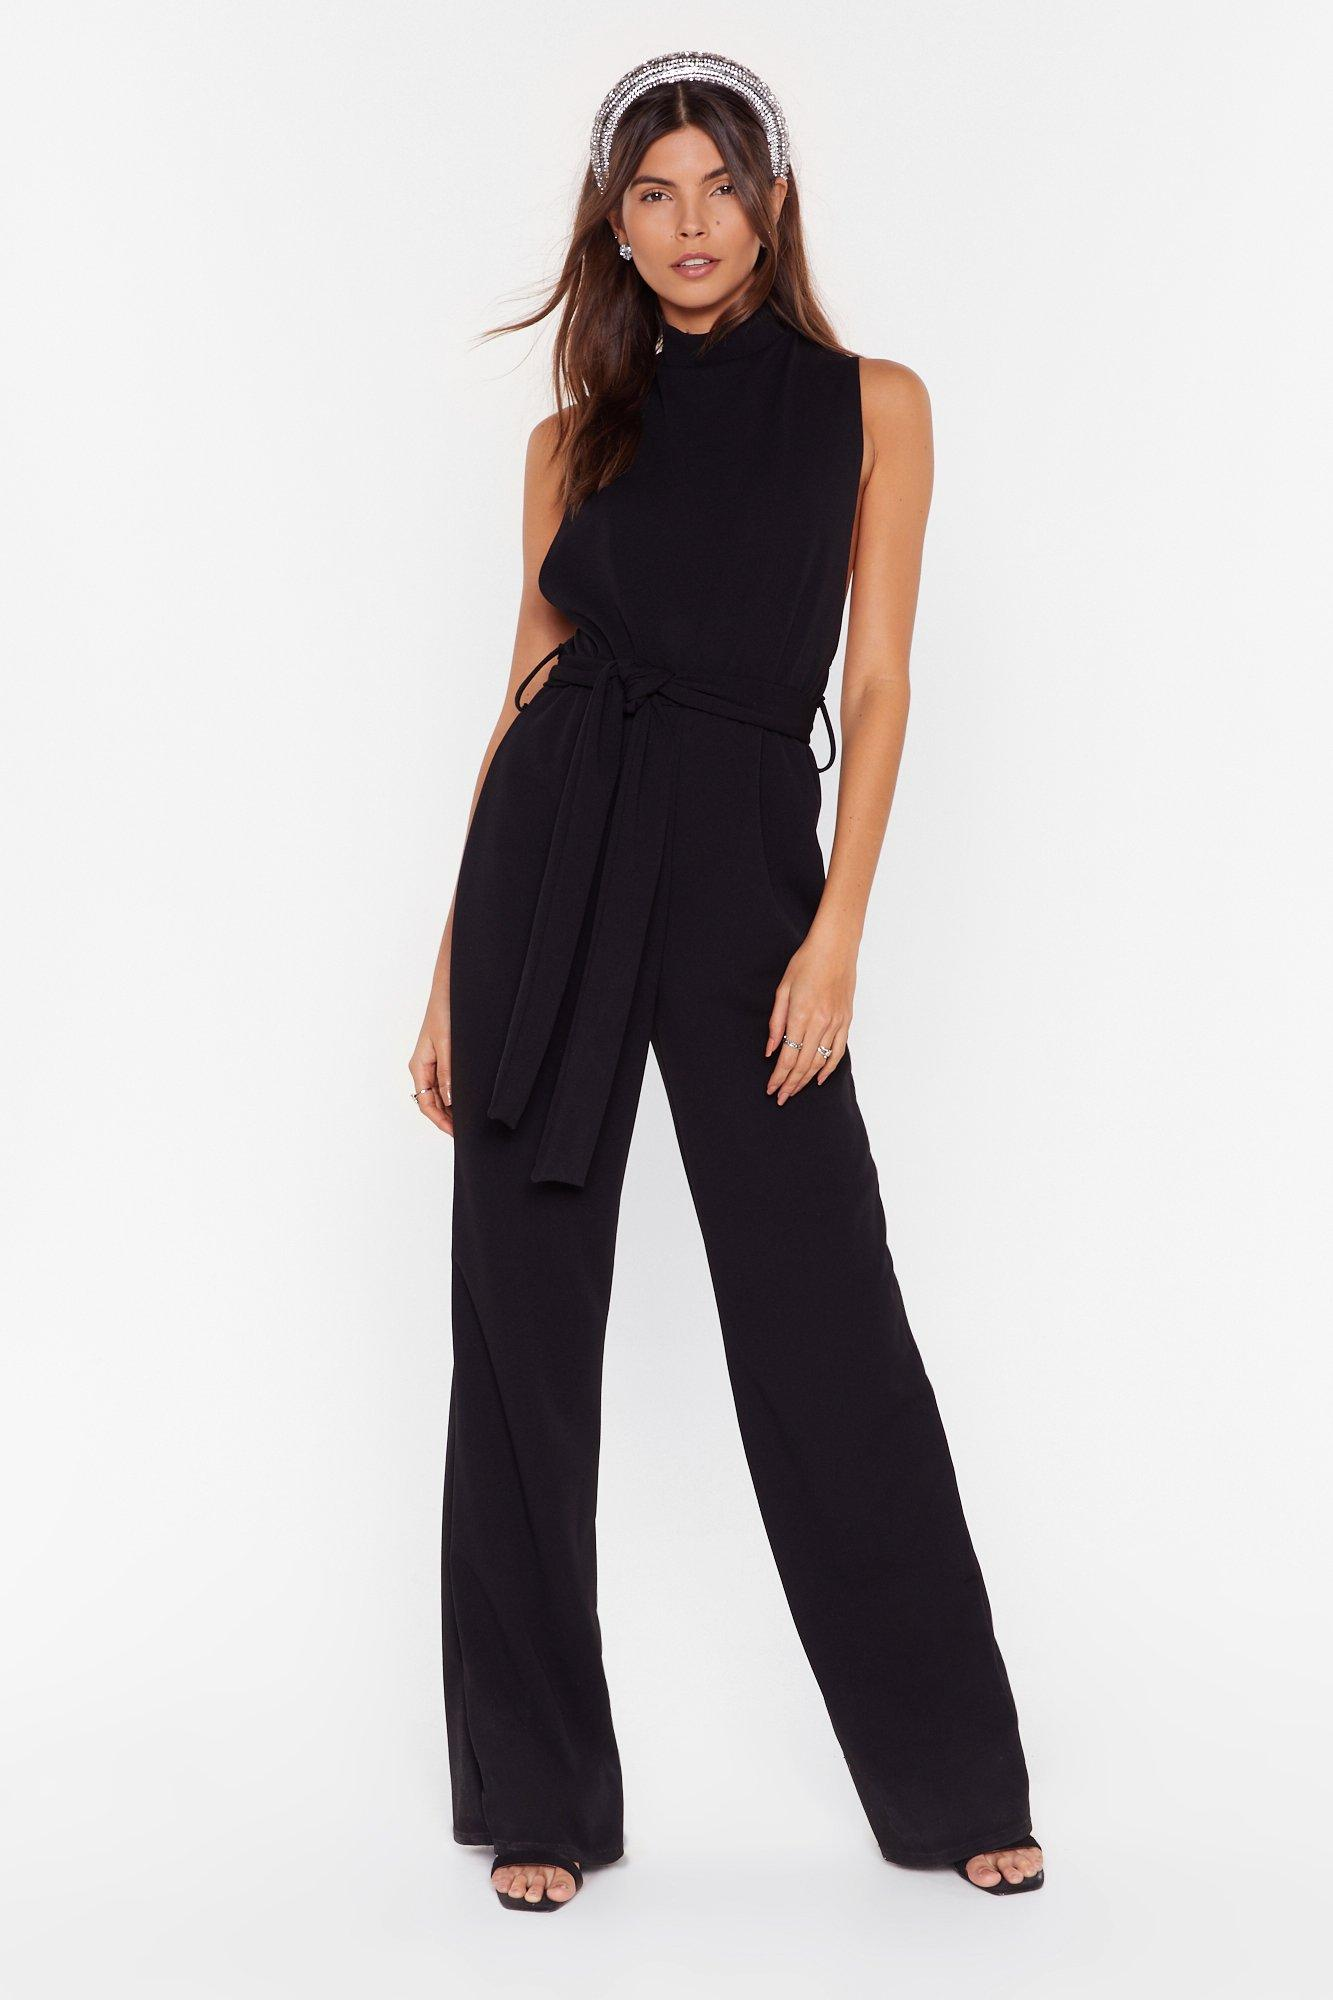 Image of Life is a Dancefloor High Neck Belted Jumpsuit